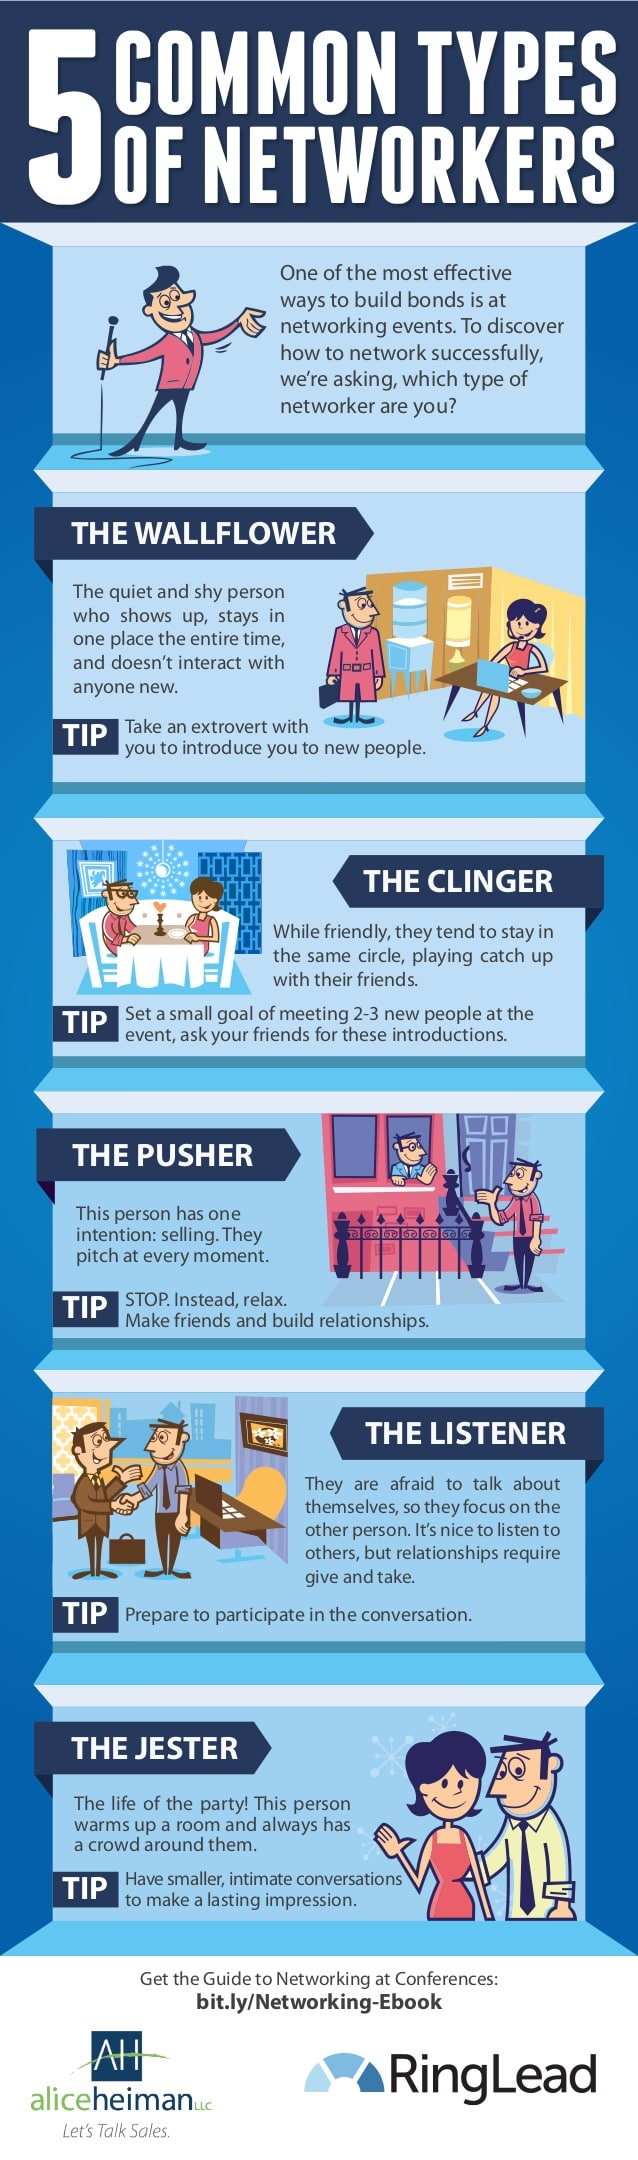 5-common-types-of-networkers-1-638 (1)